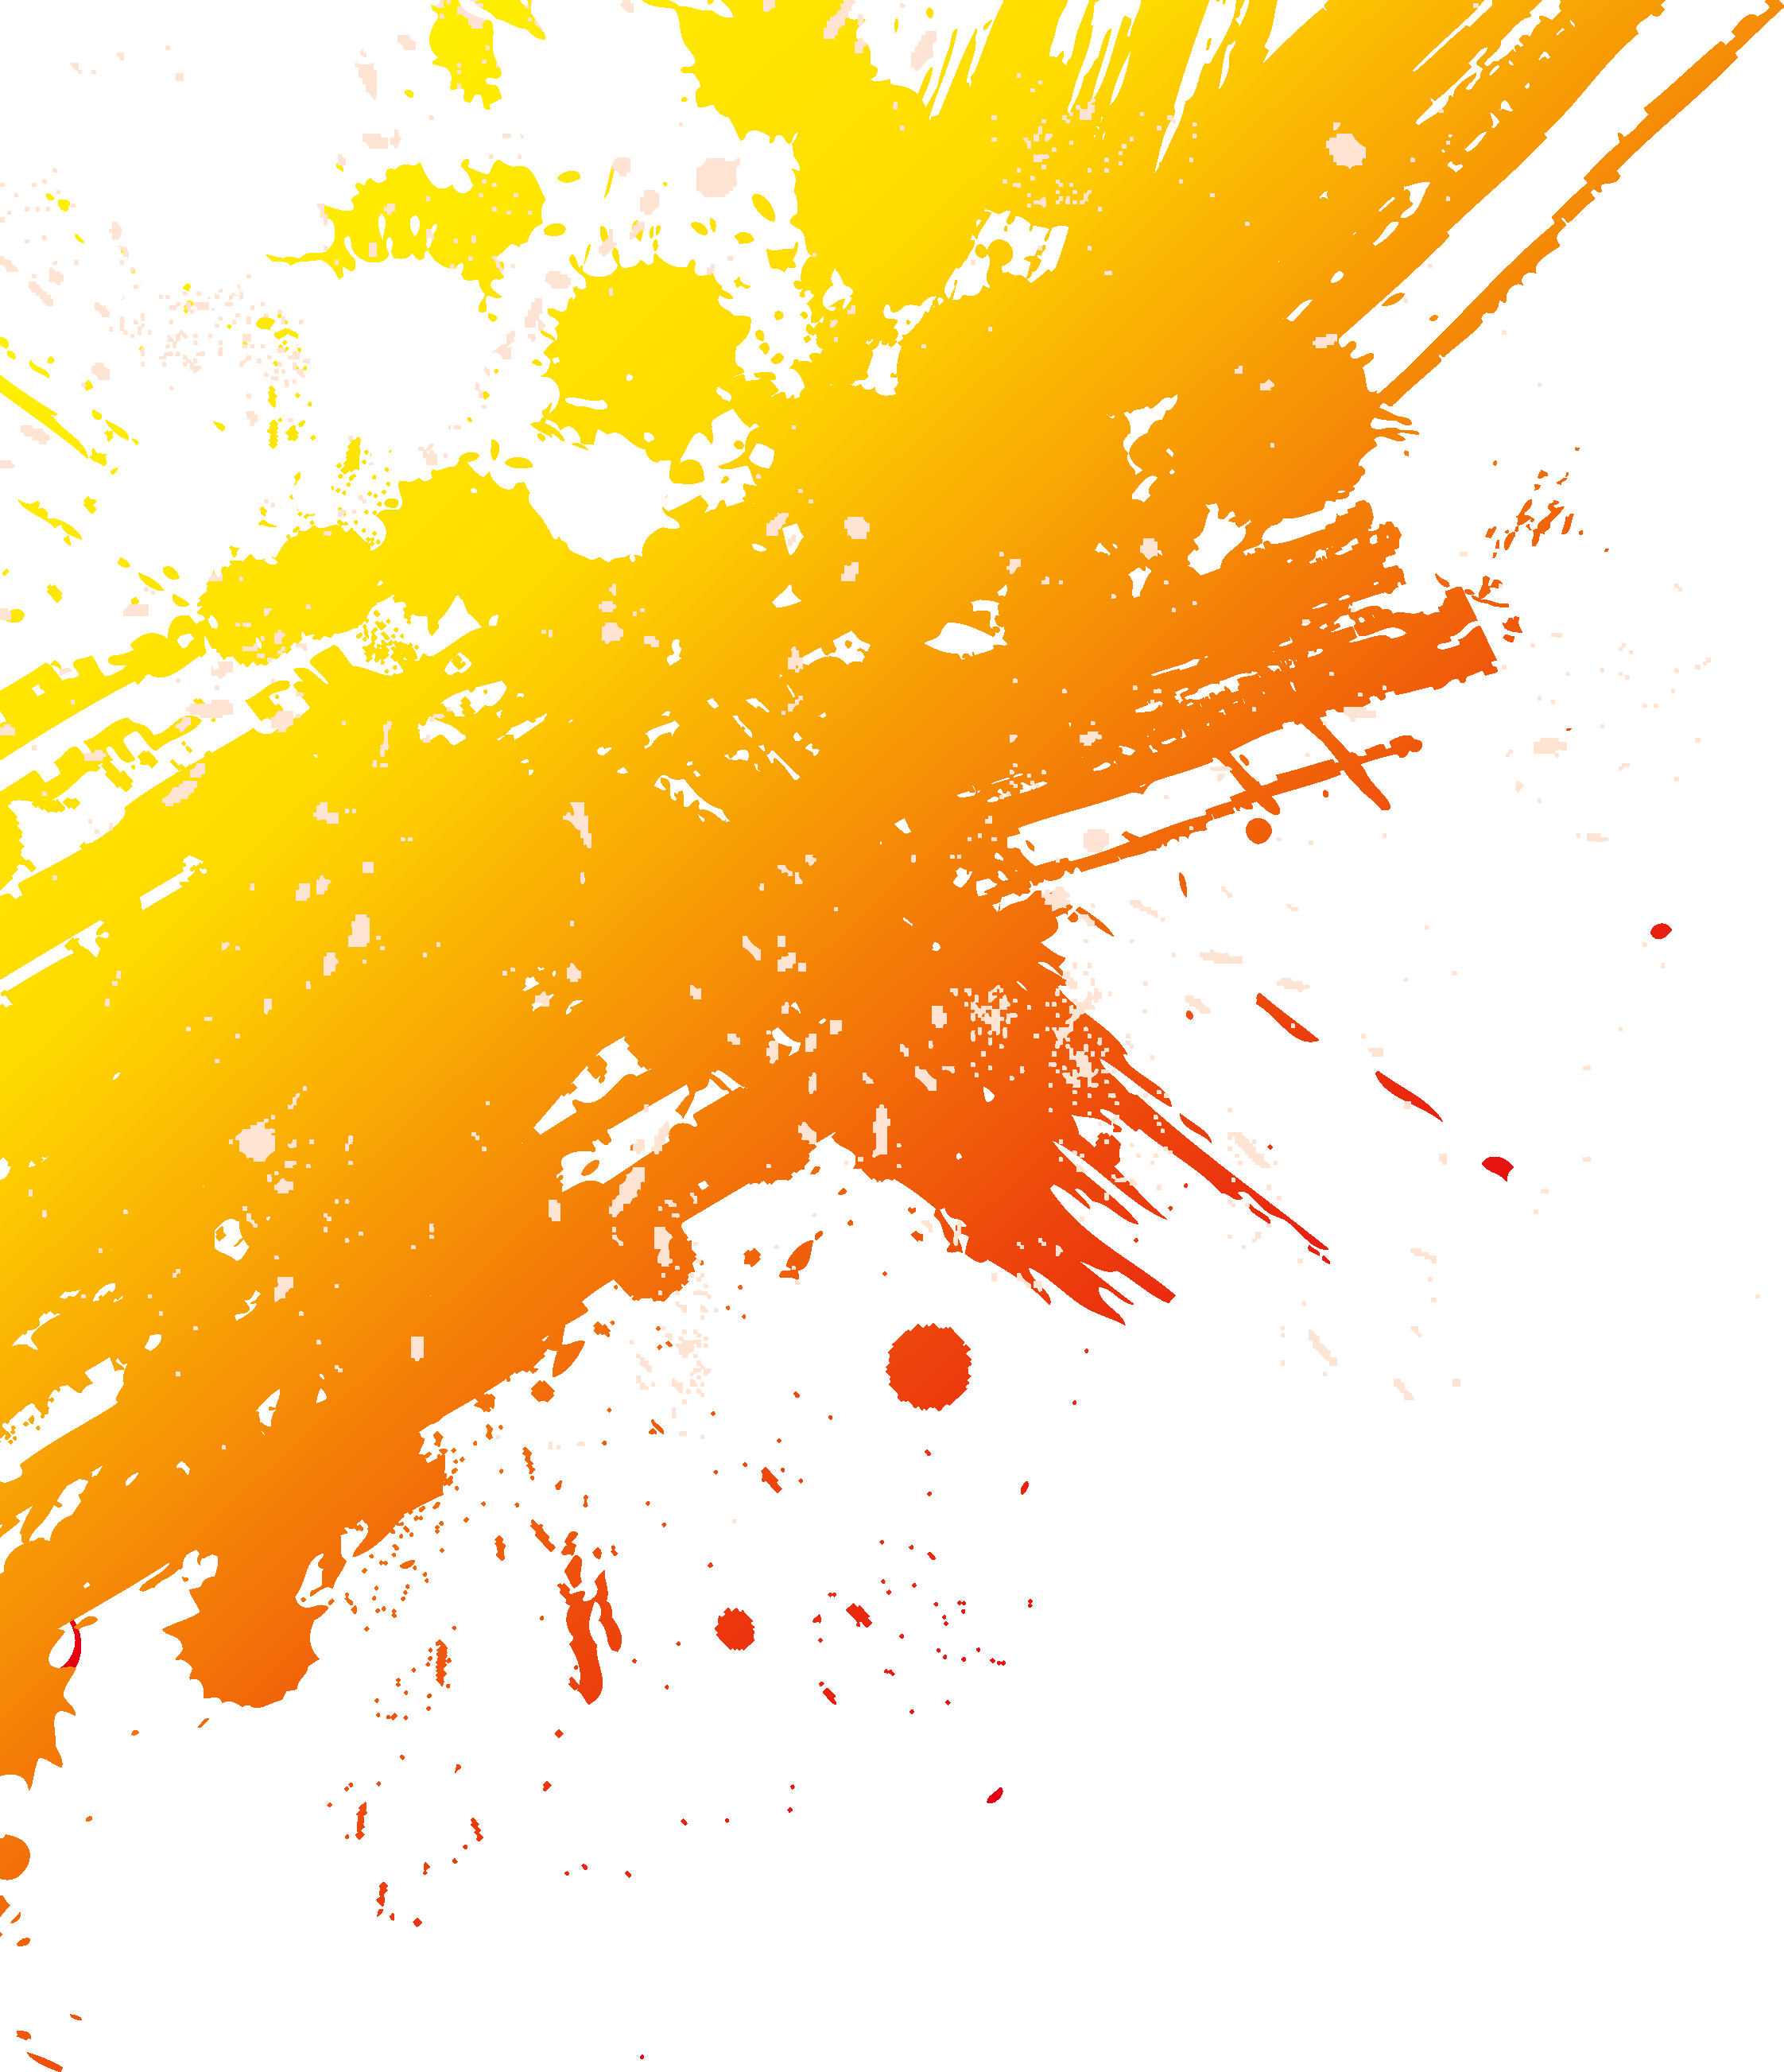 Splash of paint png. Graphic design transprent free